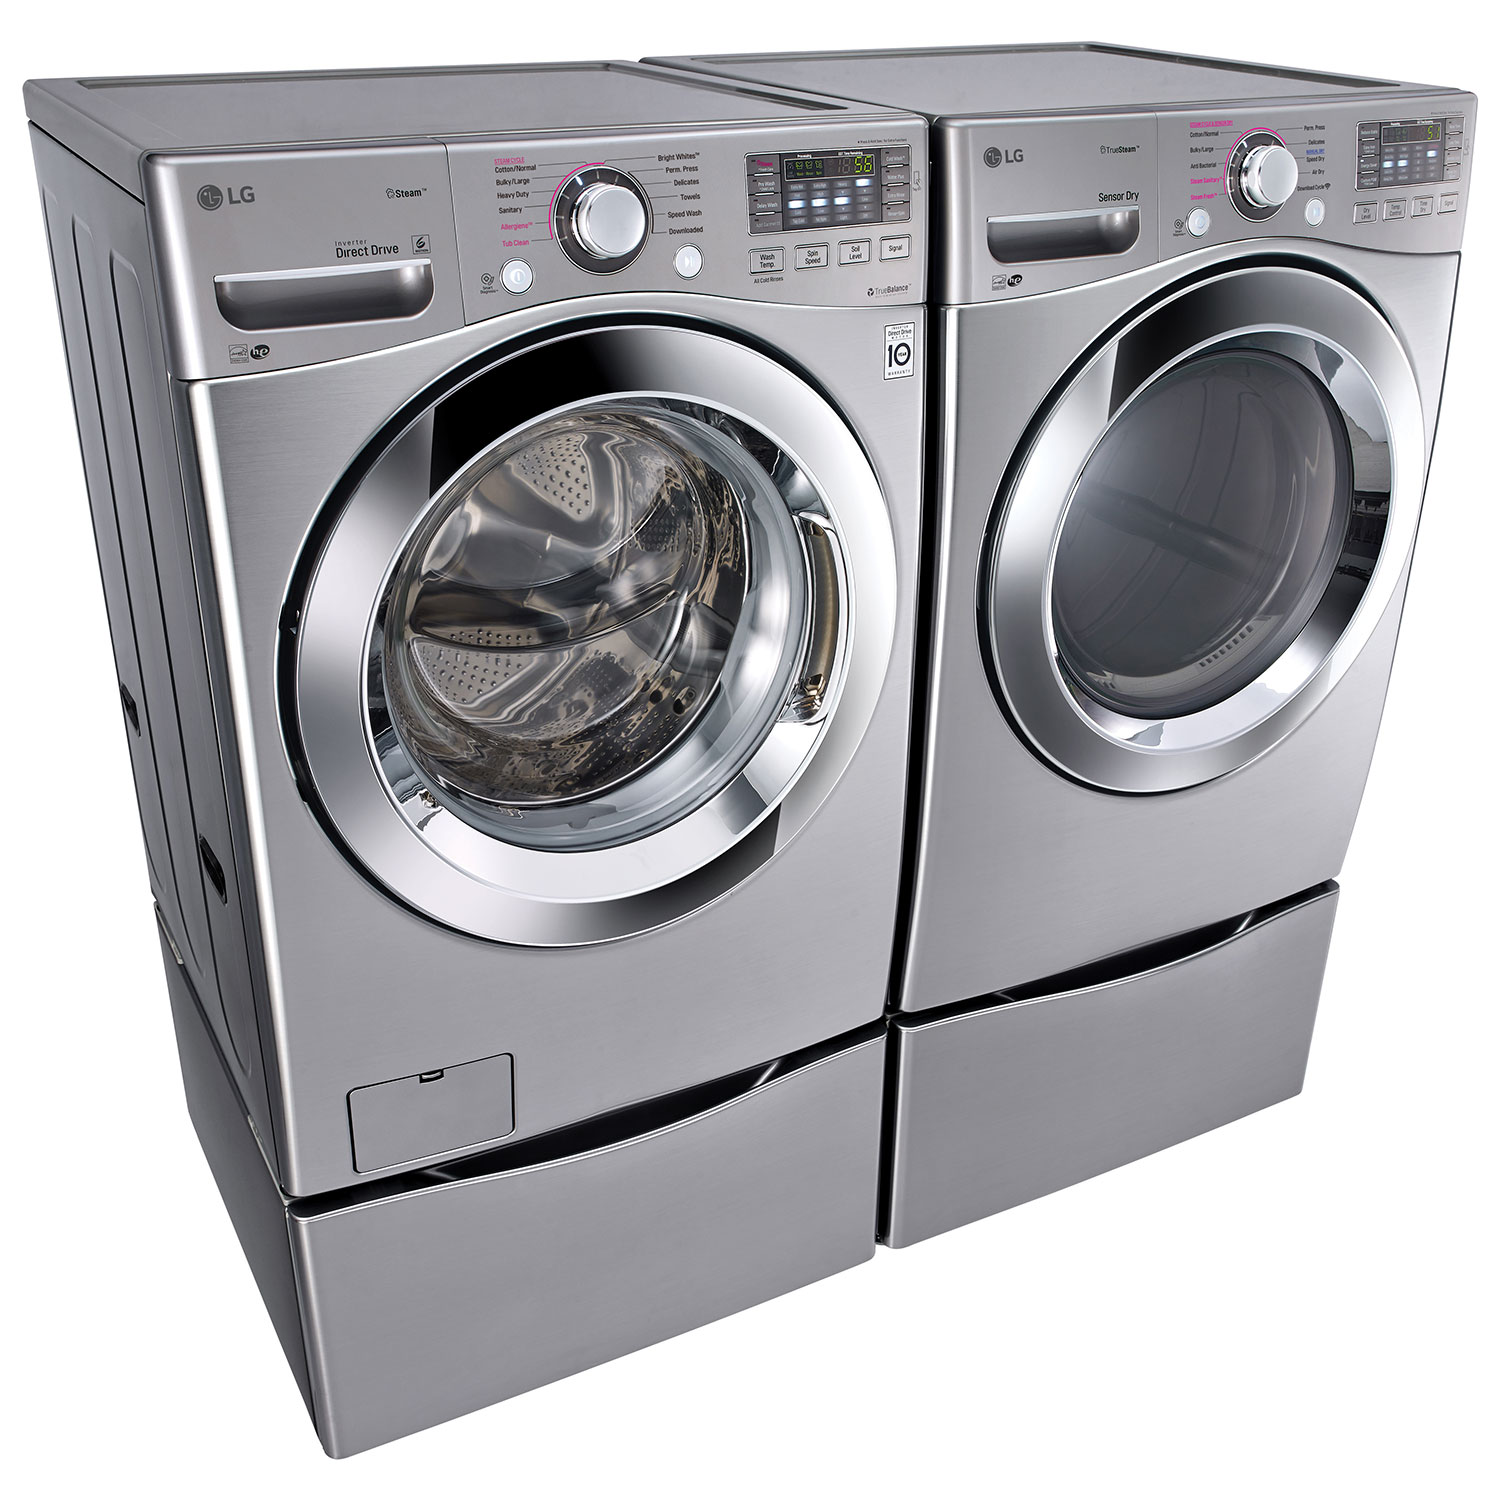 lg 52 cu ft high efficiency front load steam washer wm3670hva silver washers best buy canada